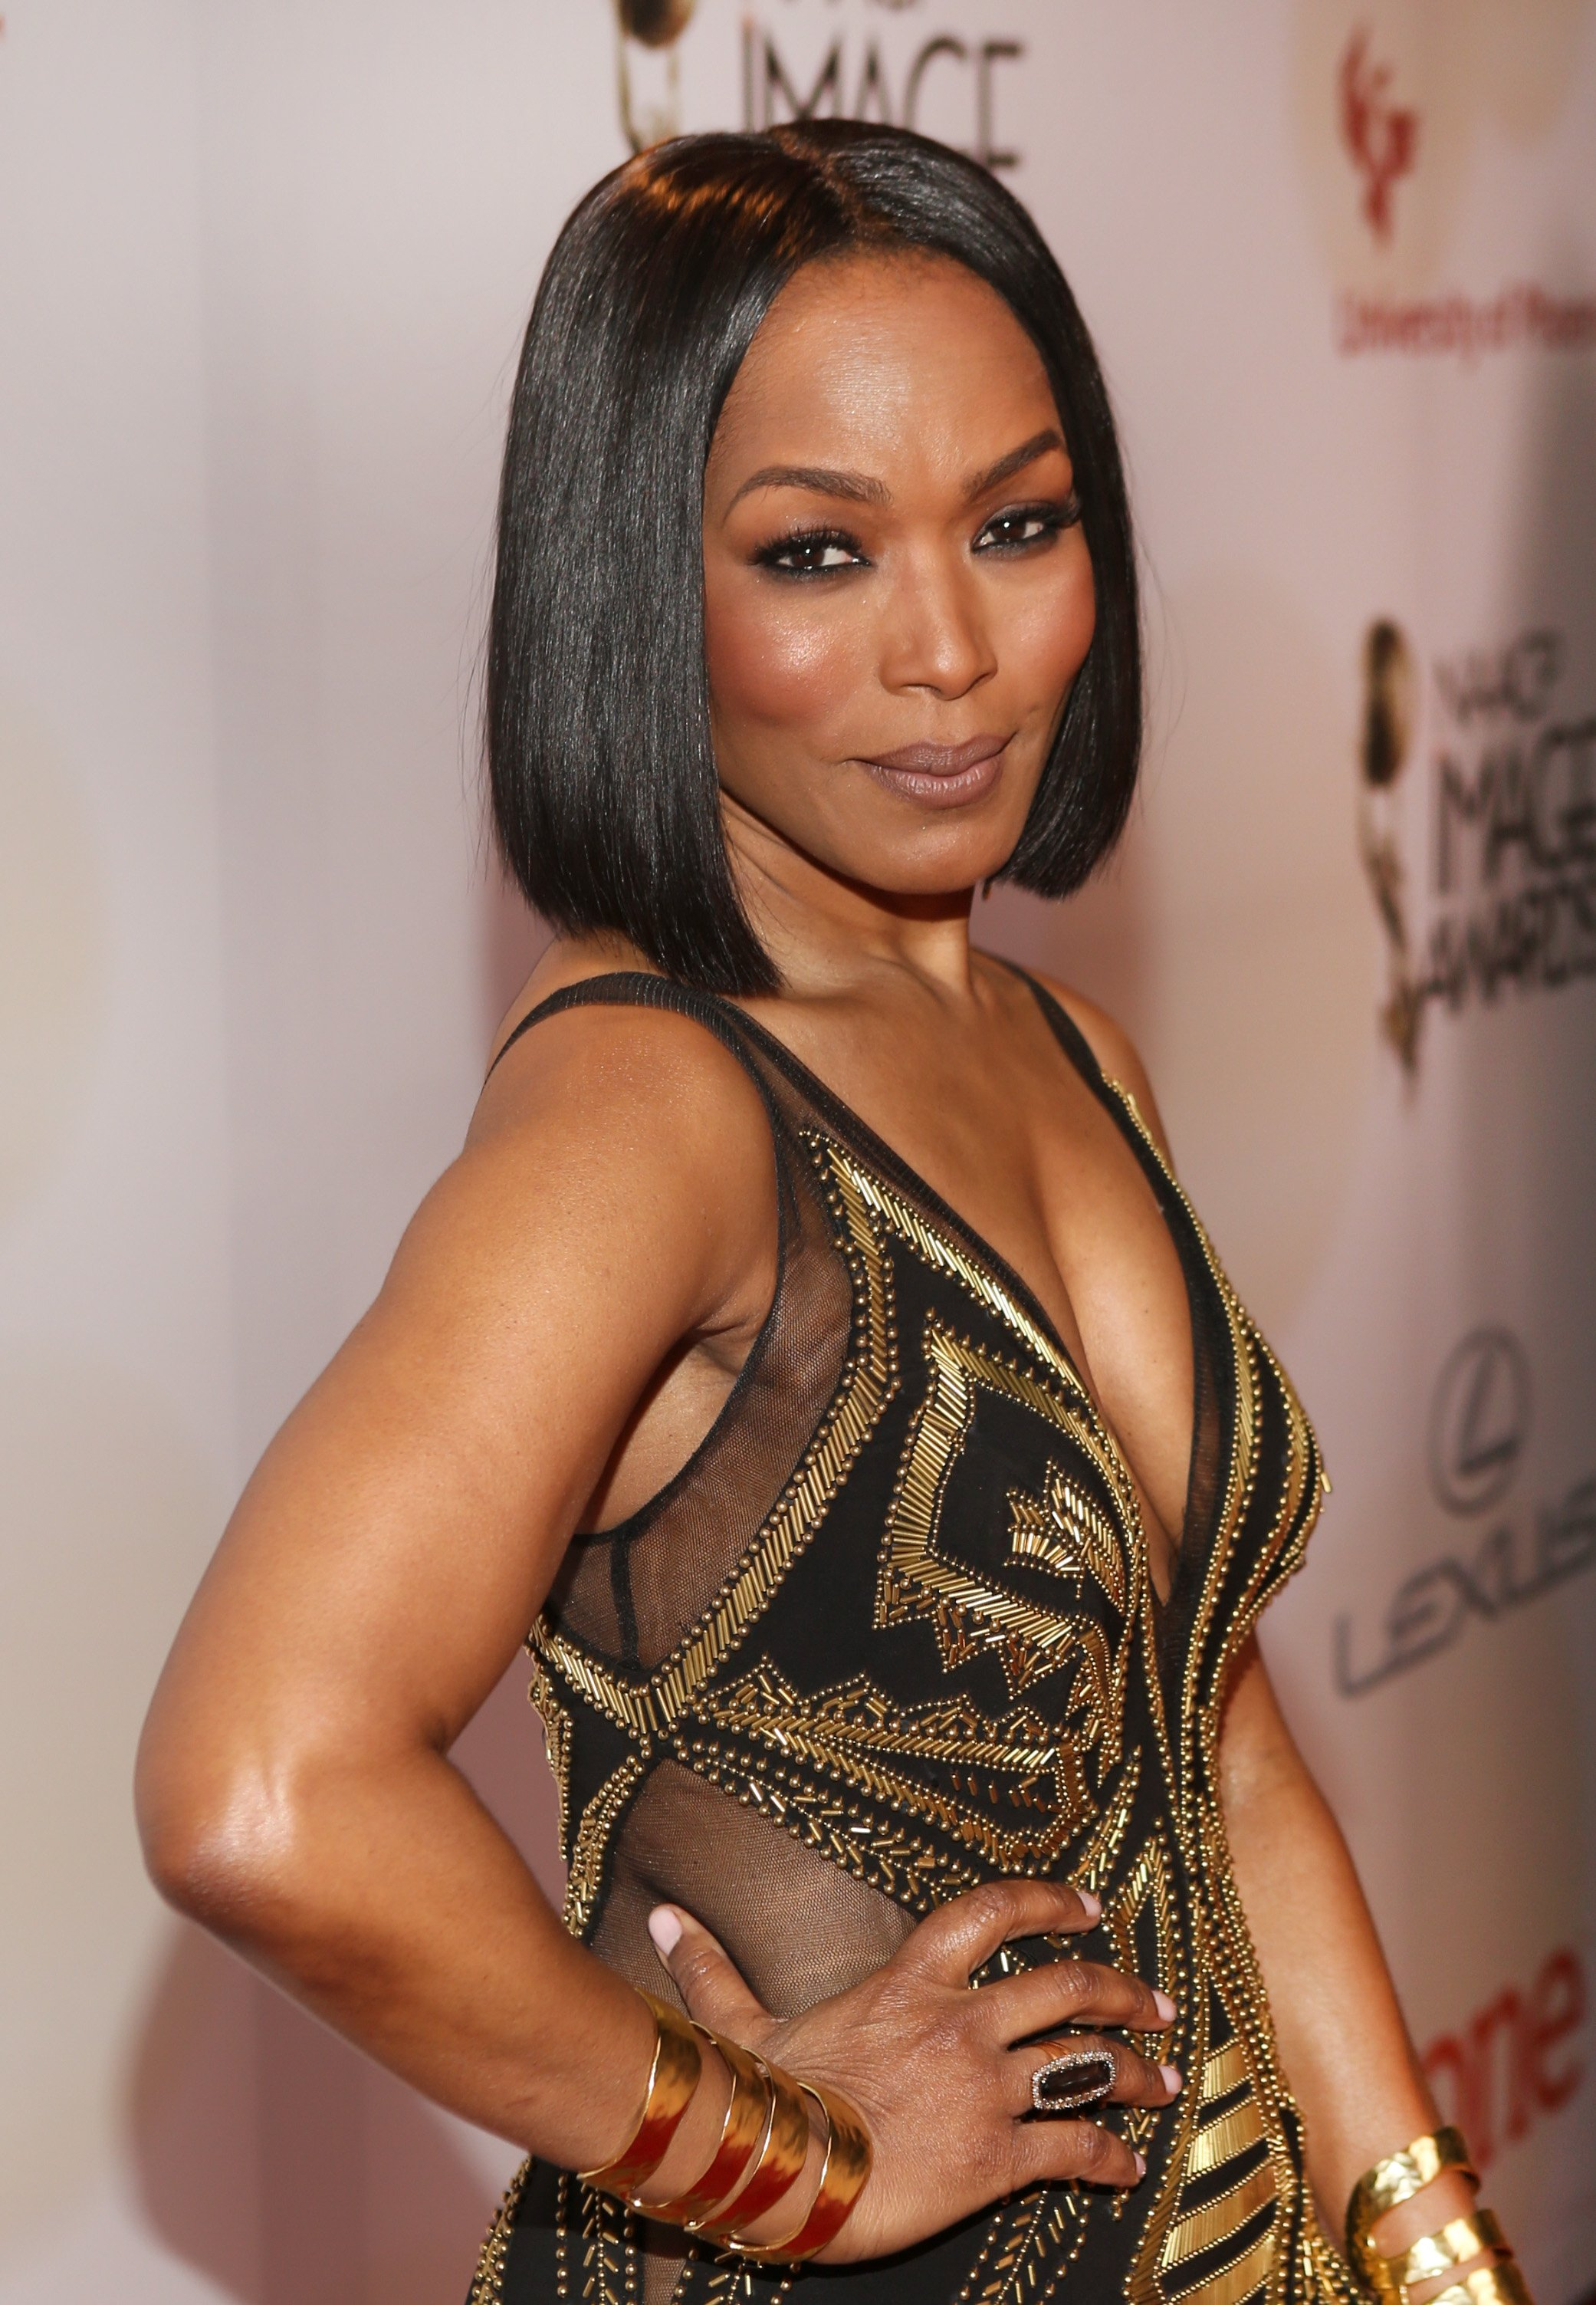 Actress/director Angela Bassett attends the 46th NAACP Image Awards presented by TV One at Pasadena Civic Auditorium on February 6, 2015| Photo: Getty Images